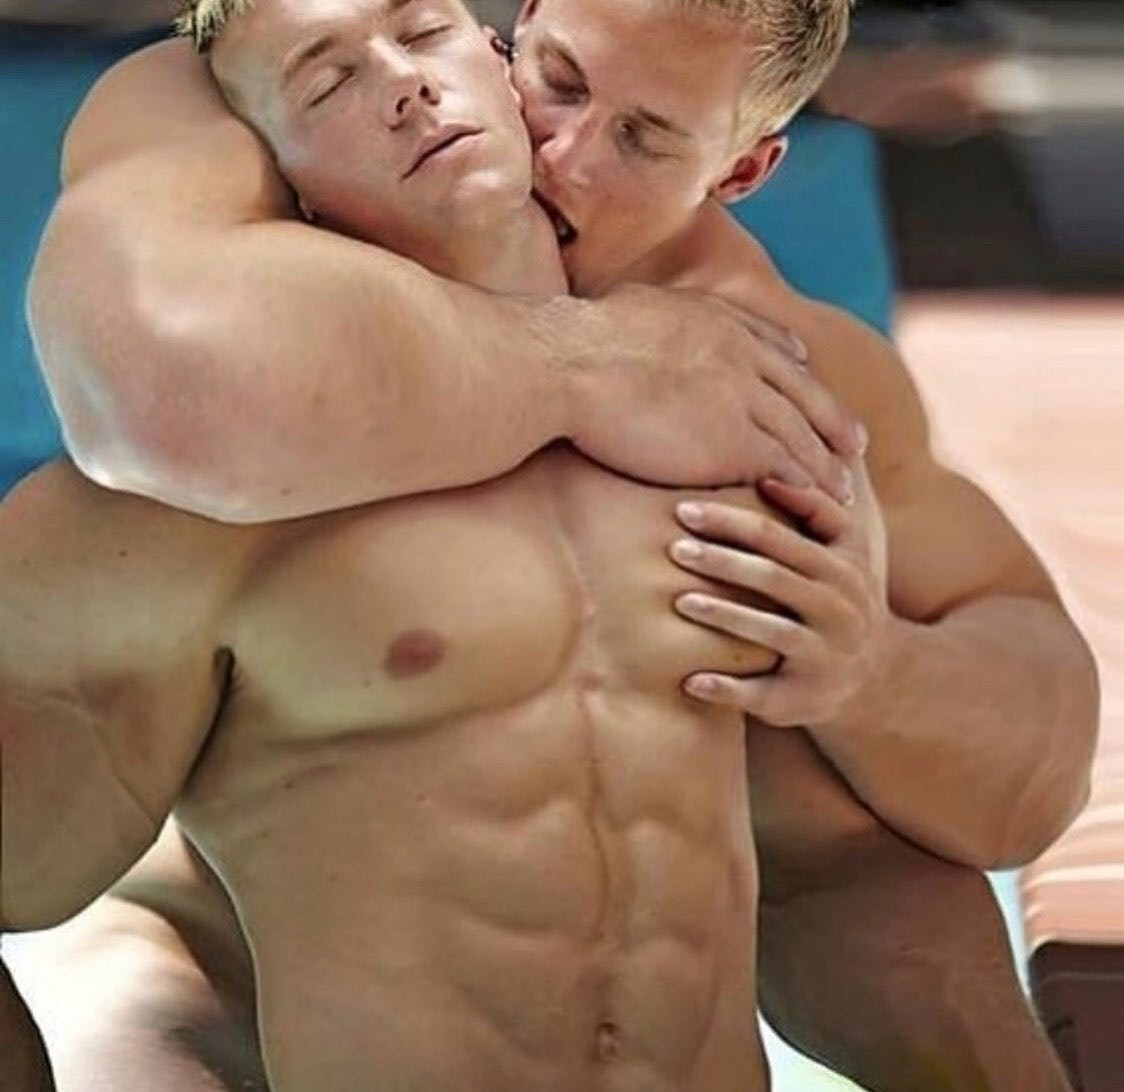 #men #hotmen #muscle #kiss